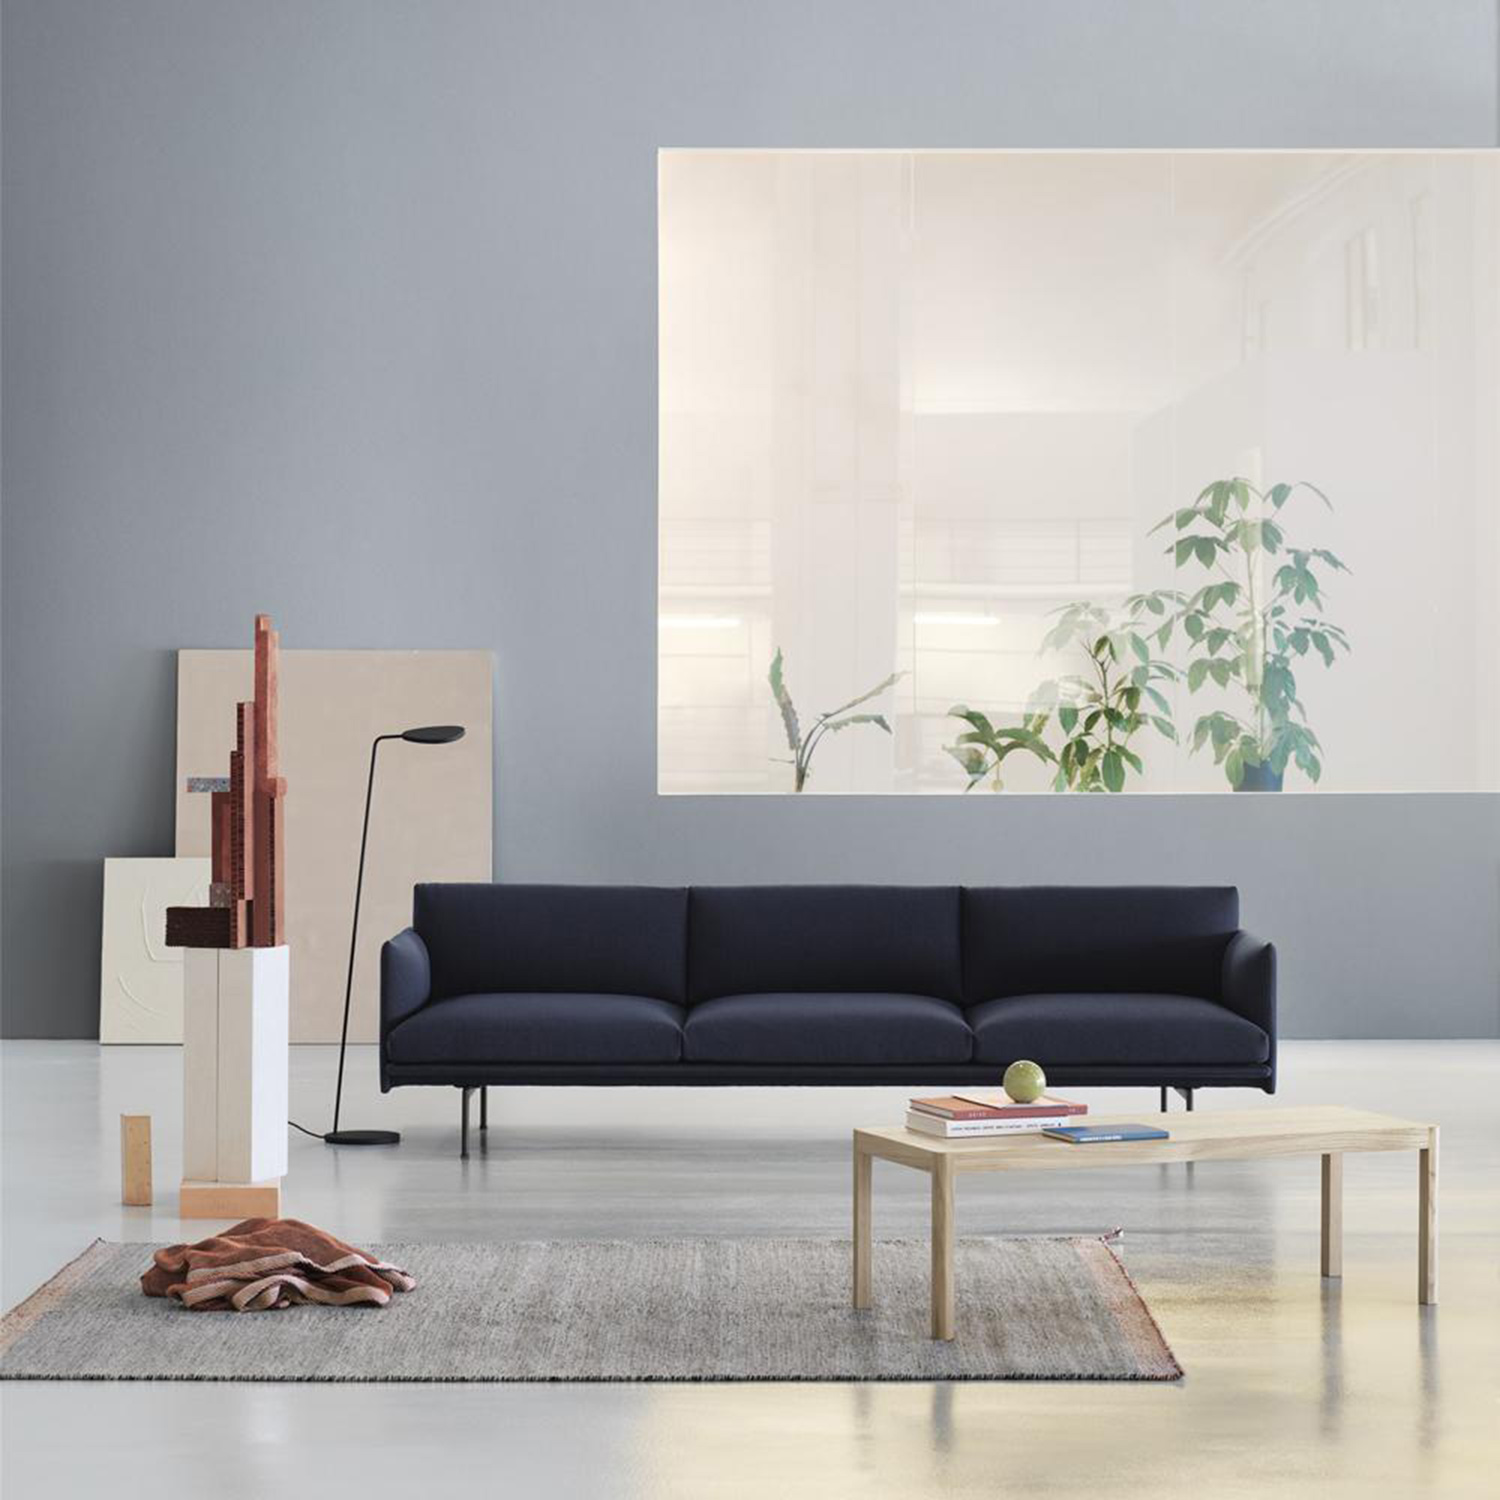 Full Size of Muuto Connect Sofa Oslo 2 Seater Review Sale Sofabord Eg Outline Chaise Longue Dimensions System Uk Airy 3 Sitzer Das Haus Bochum Wohnlandschaft Impressionen Sofa Muuto Sofa